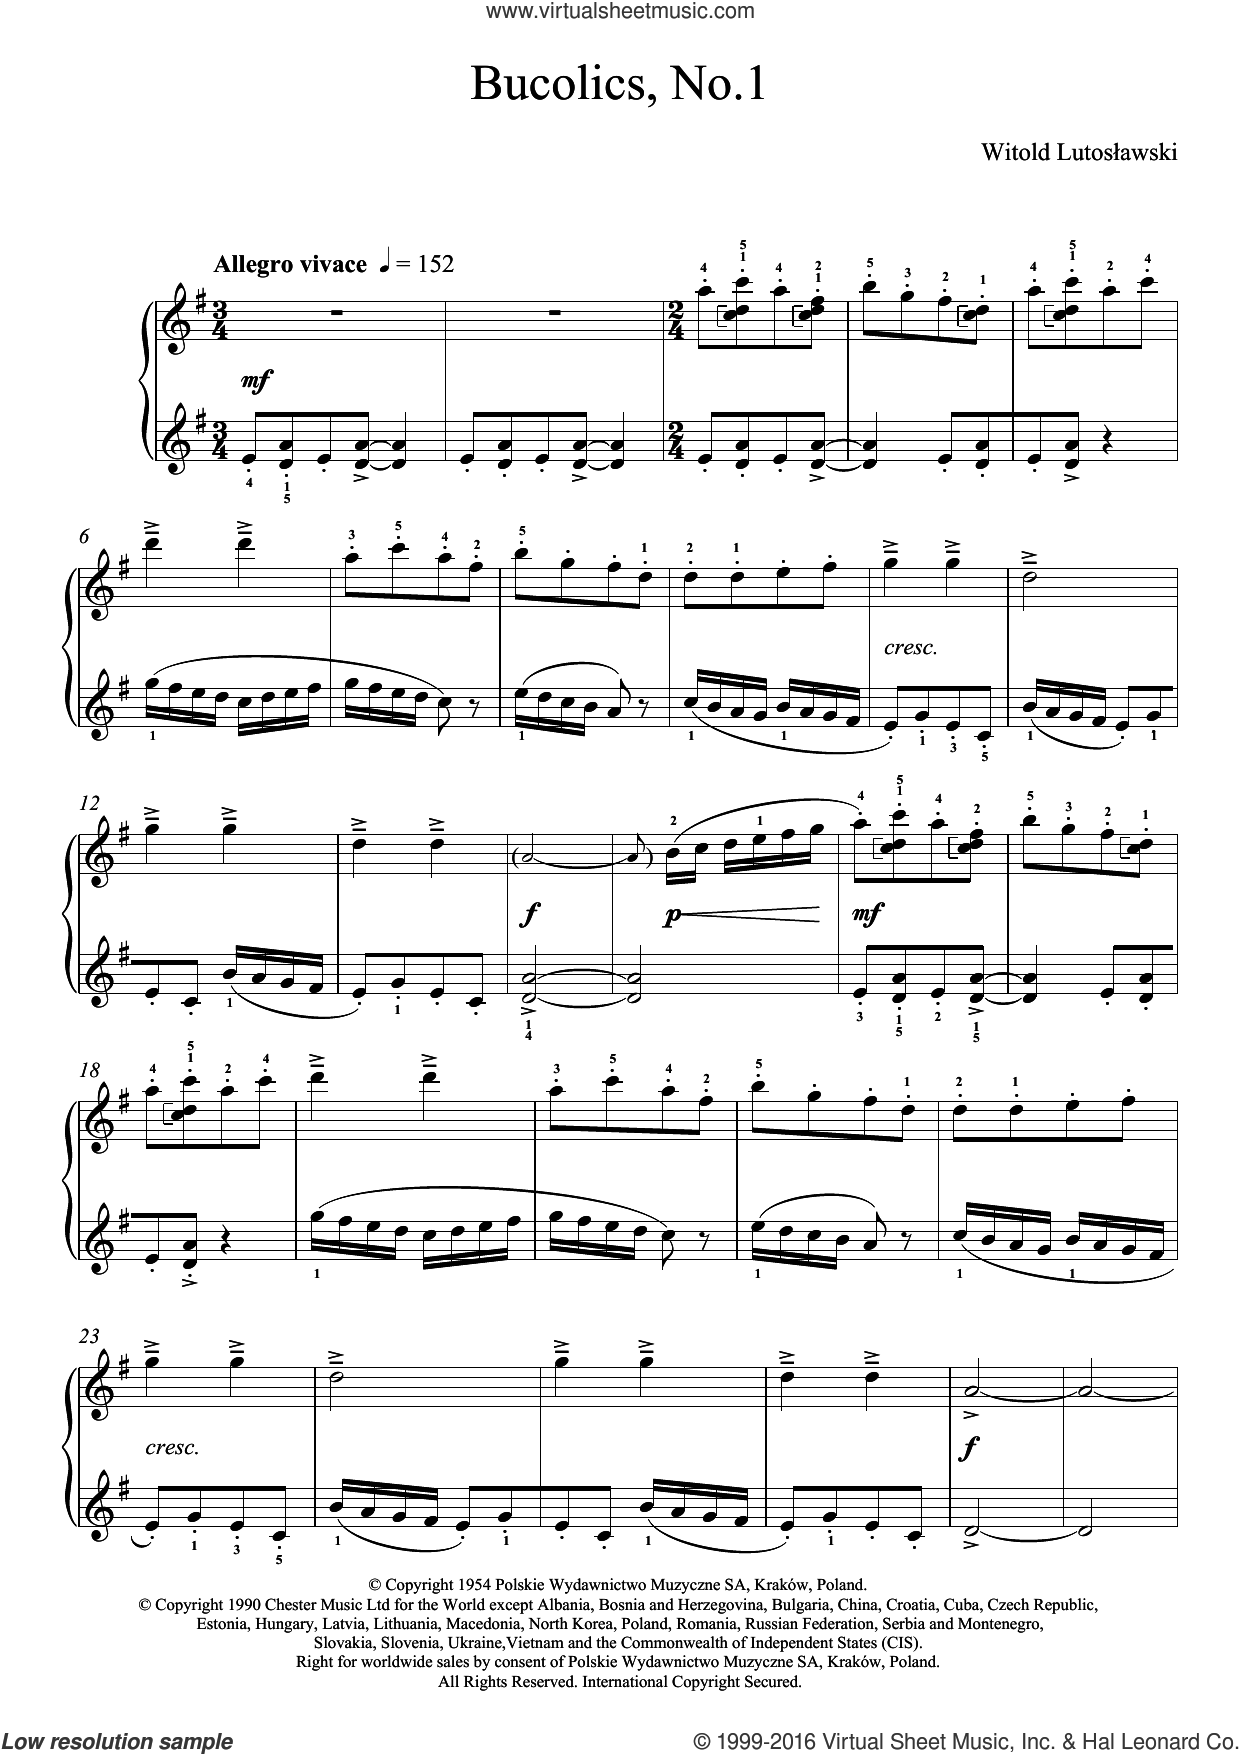 Bucolics, No.1 sheet music for piano solo by Witold Lutoslawski, classical score, intermediate skill level